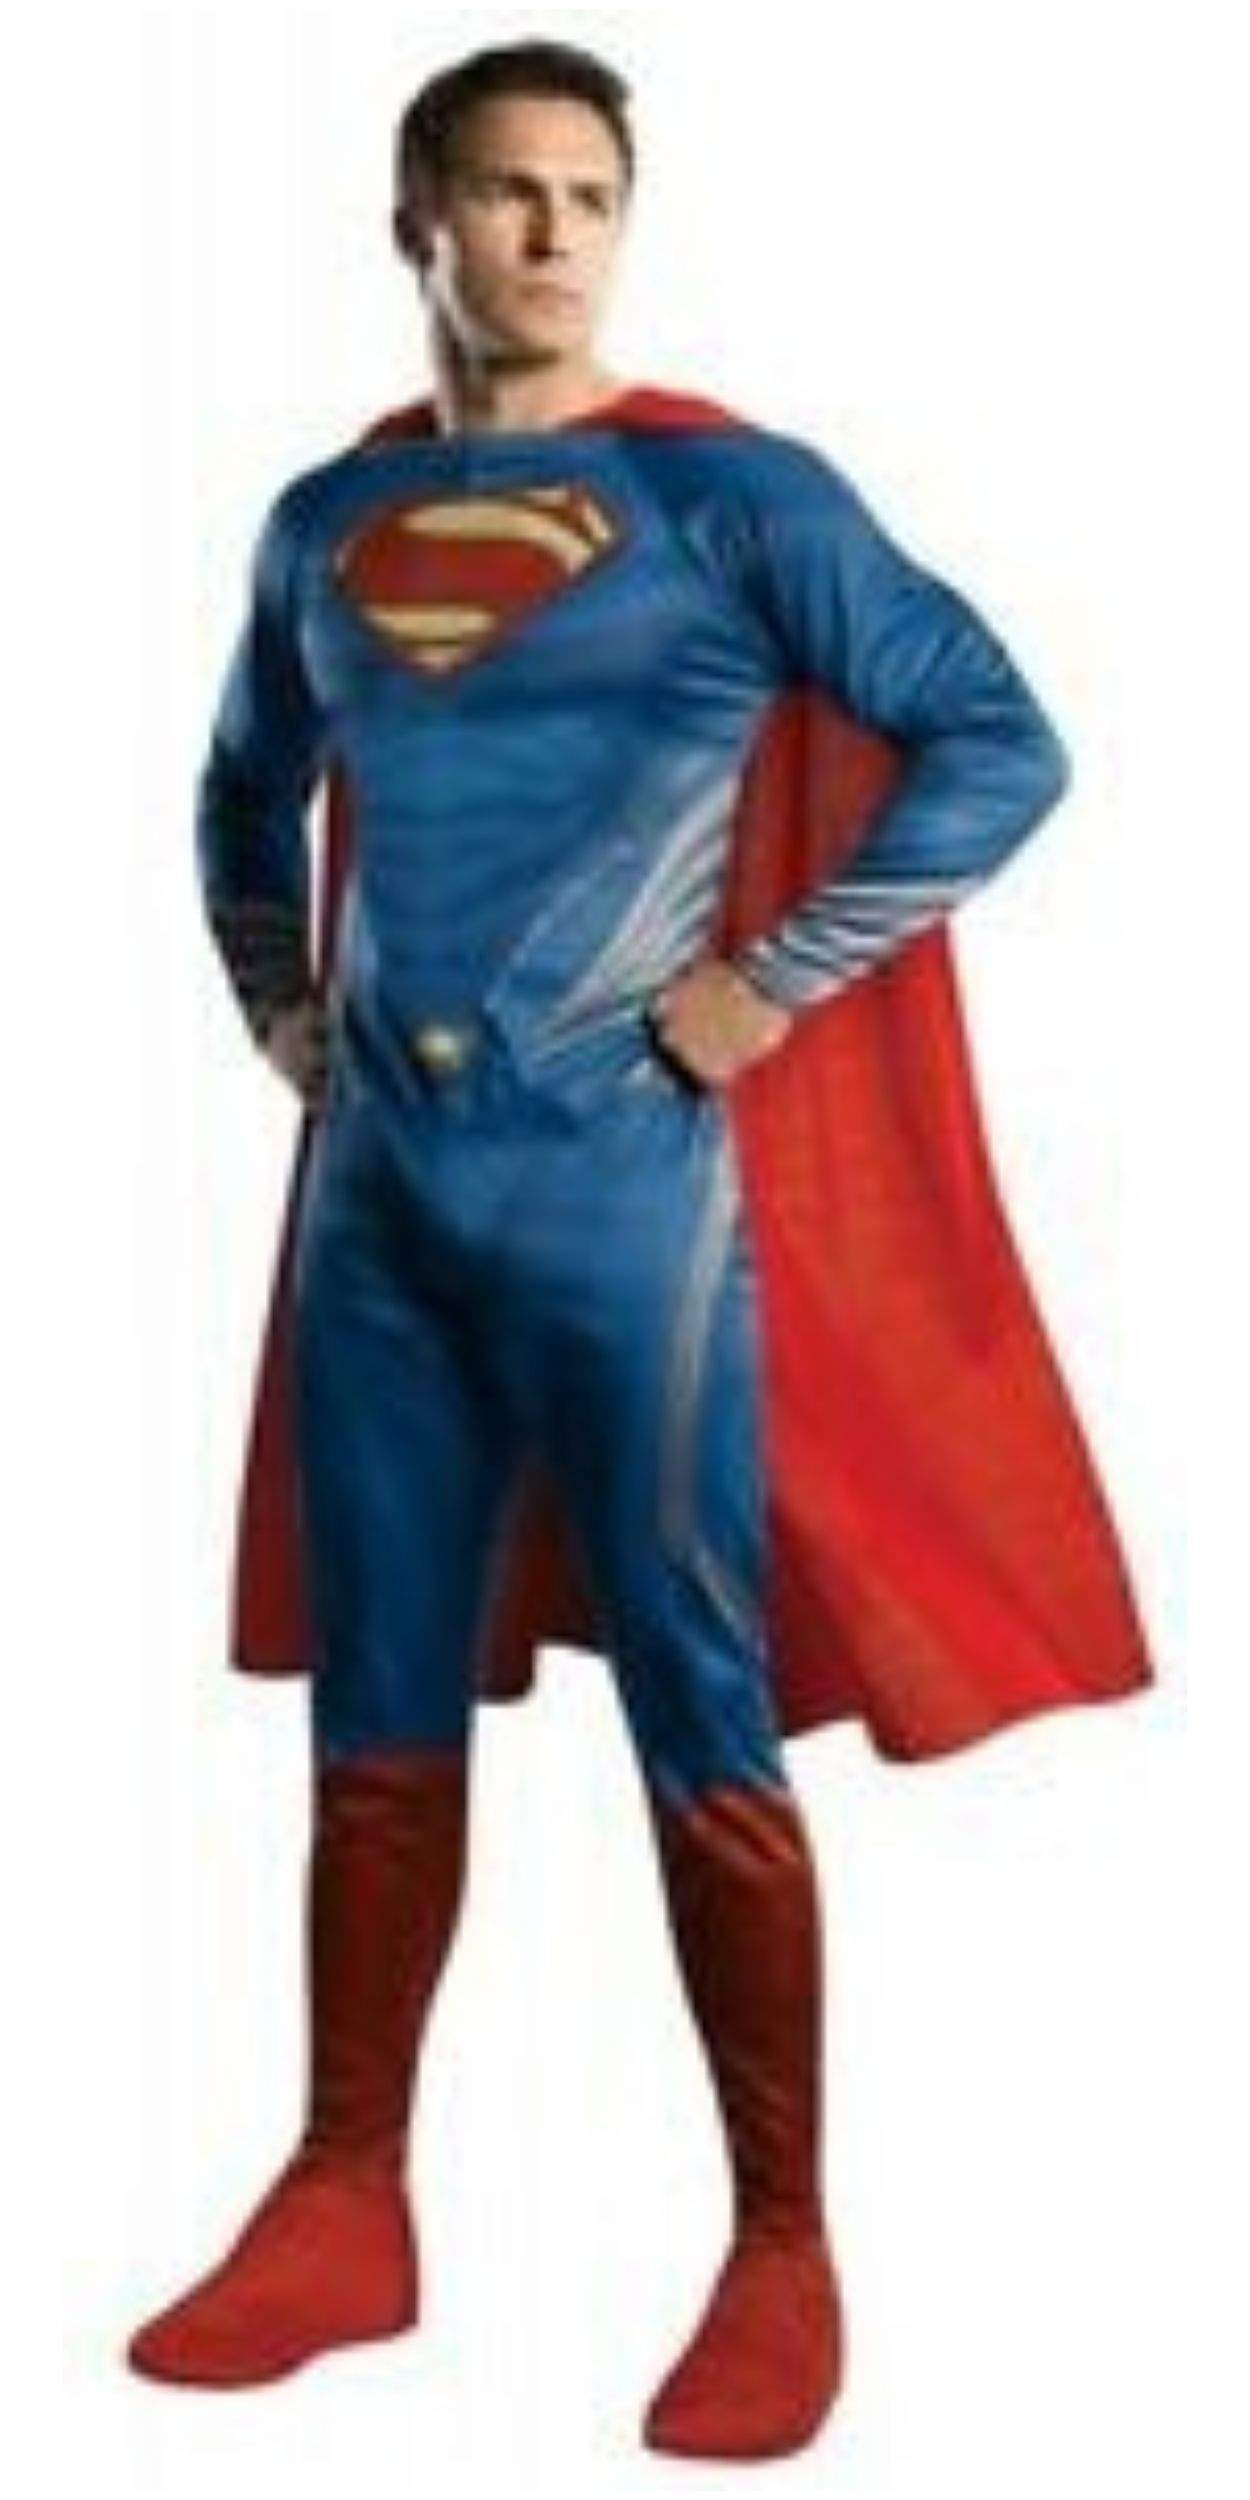 Man in Superman Party Costume